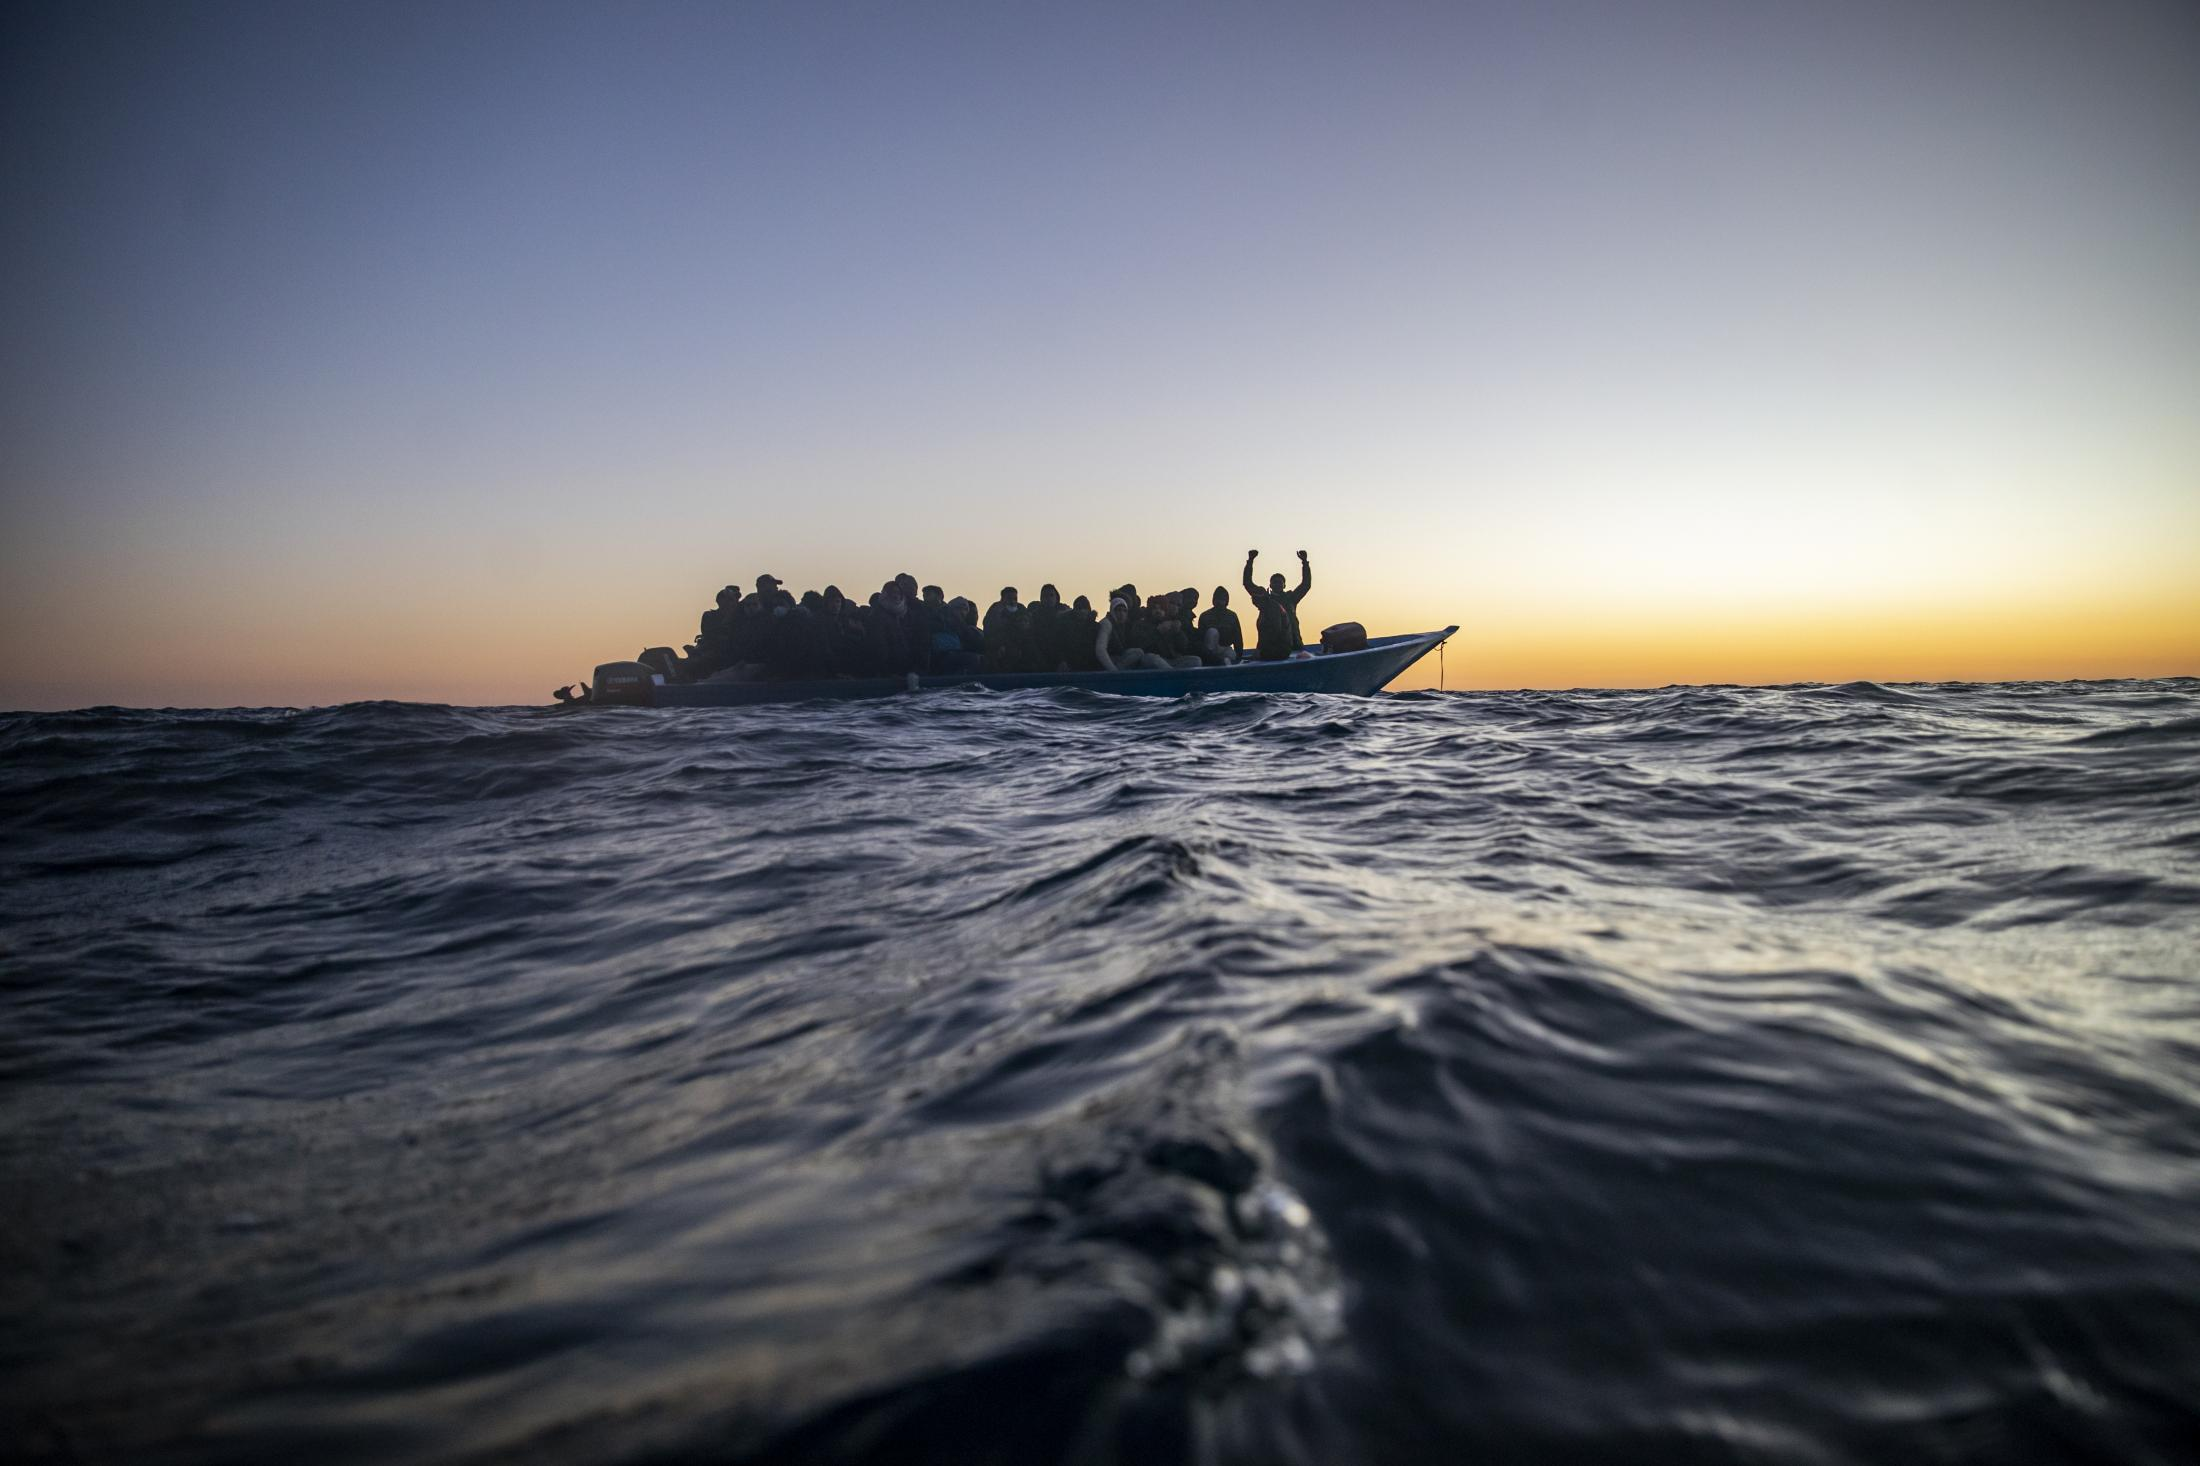 Migrants and refugees from different African nationalities wait for assistance aboard an overcrowded wooden boat, as aid workers of the Spanish NGO Open Arms approach them in the Mediterranean Sea, international waters, at 122 miles off the Libyan coast, Friday, Feb. 12, 2021.